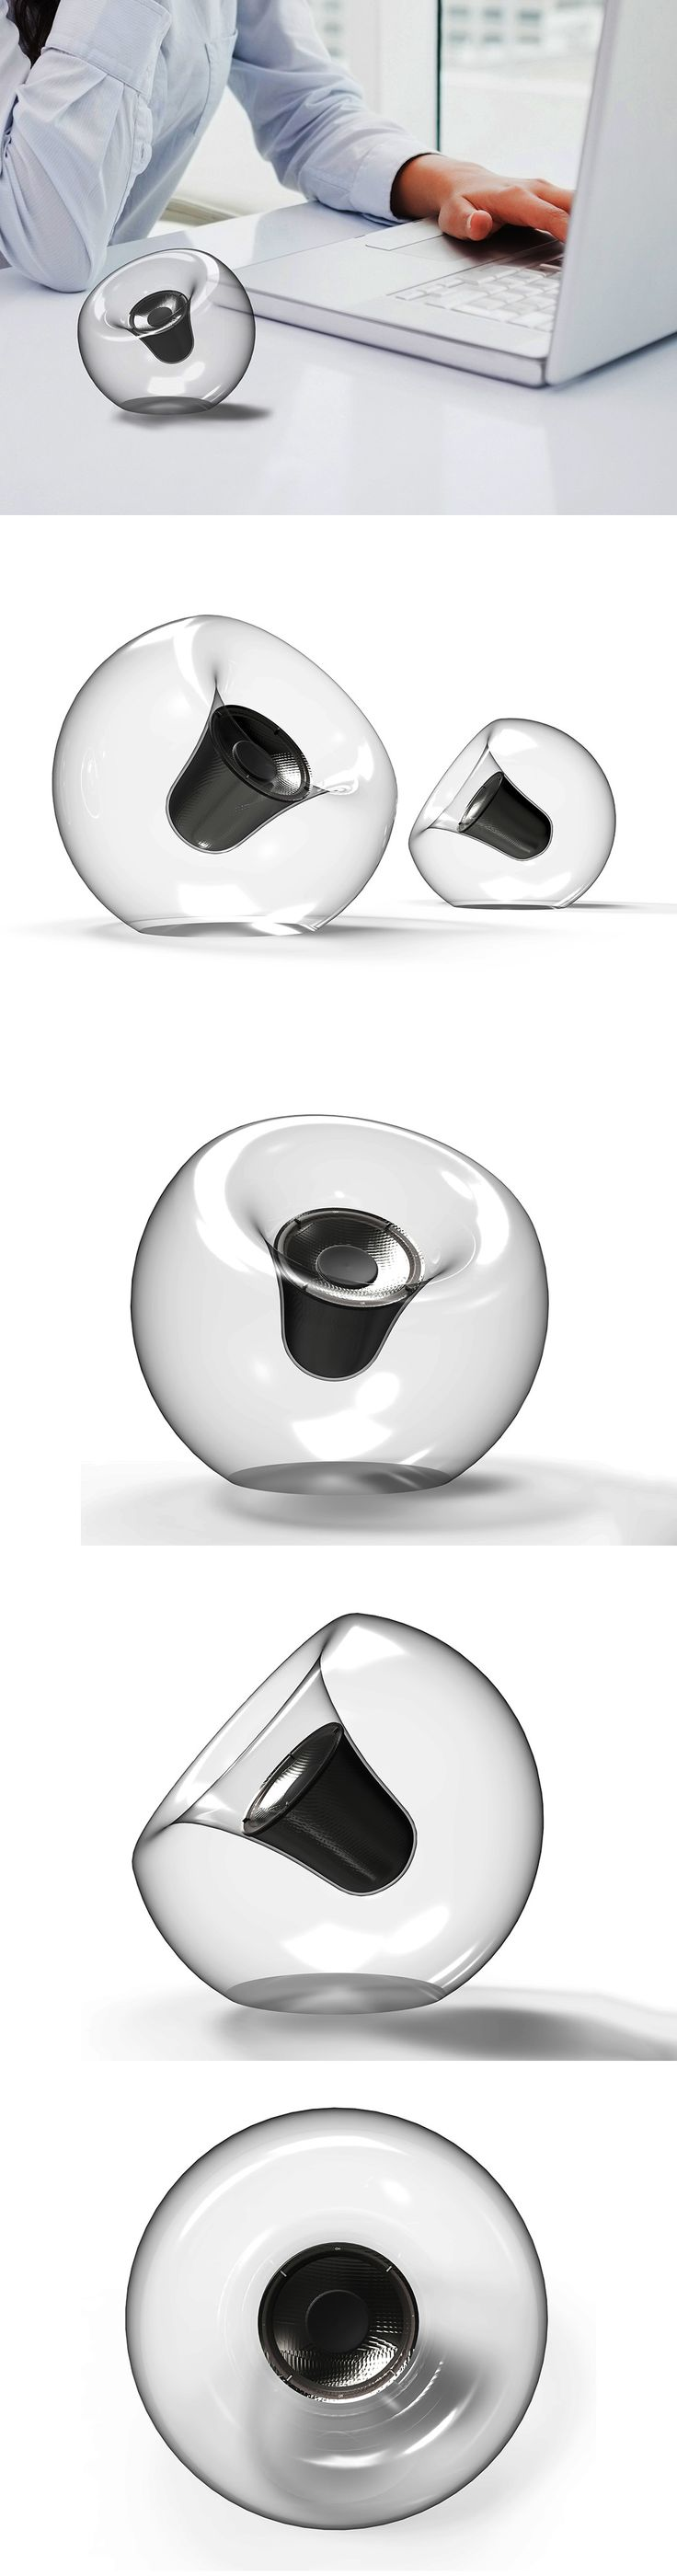 The FiPo looks like an evolved solo version of Harman Kardon's Soundsticks. Read more at Yanko Design